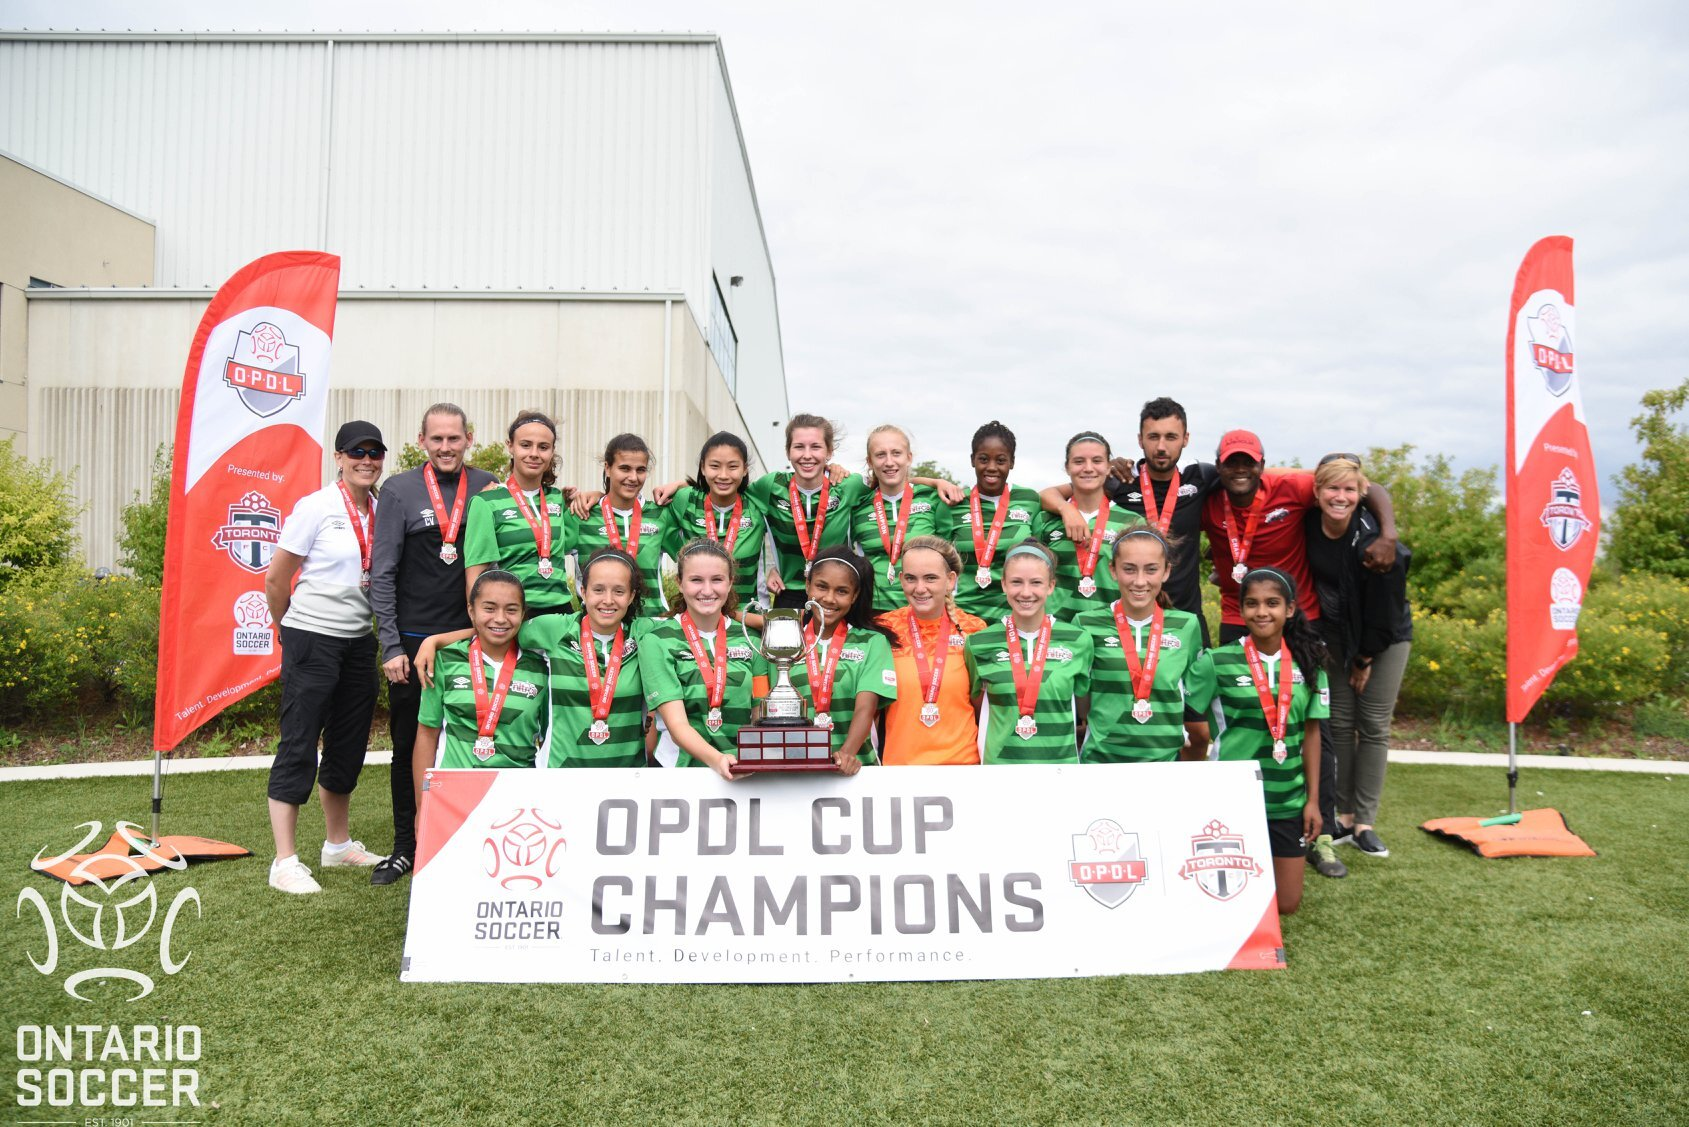 1c0d5e88b91 SILVER LINING...the Nitros U17s girls and technical staff with the OPDL Cup  Picture courtesy of Ontario Soccer